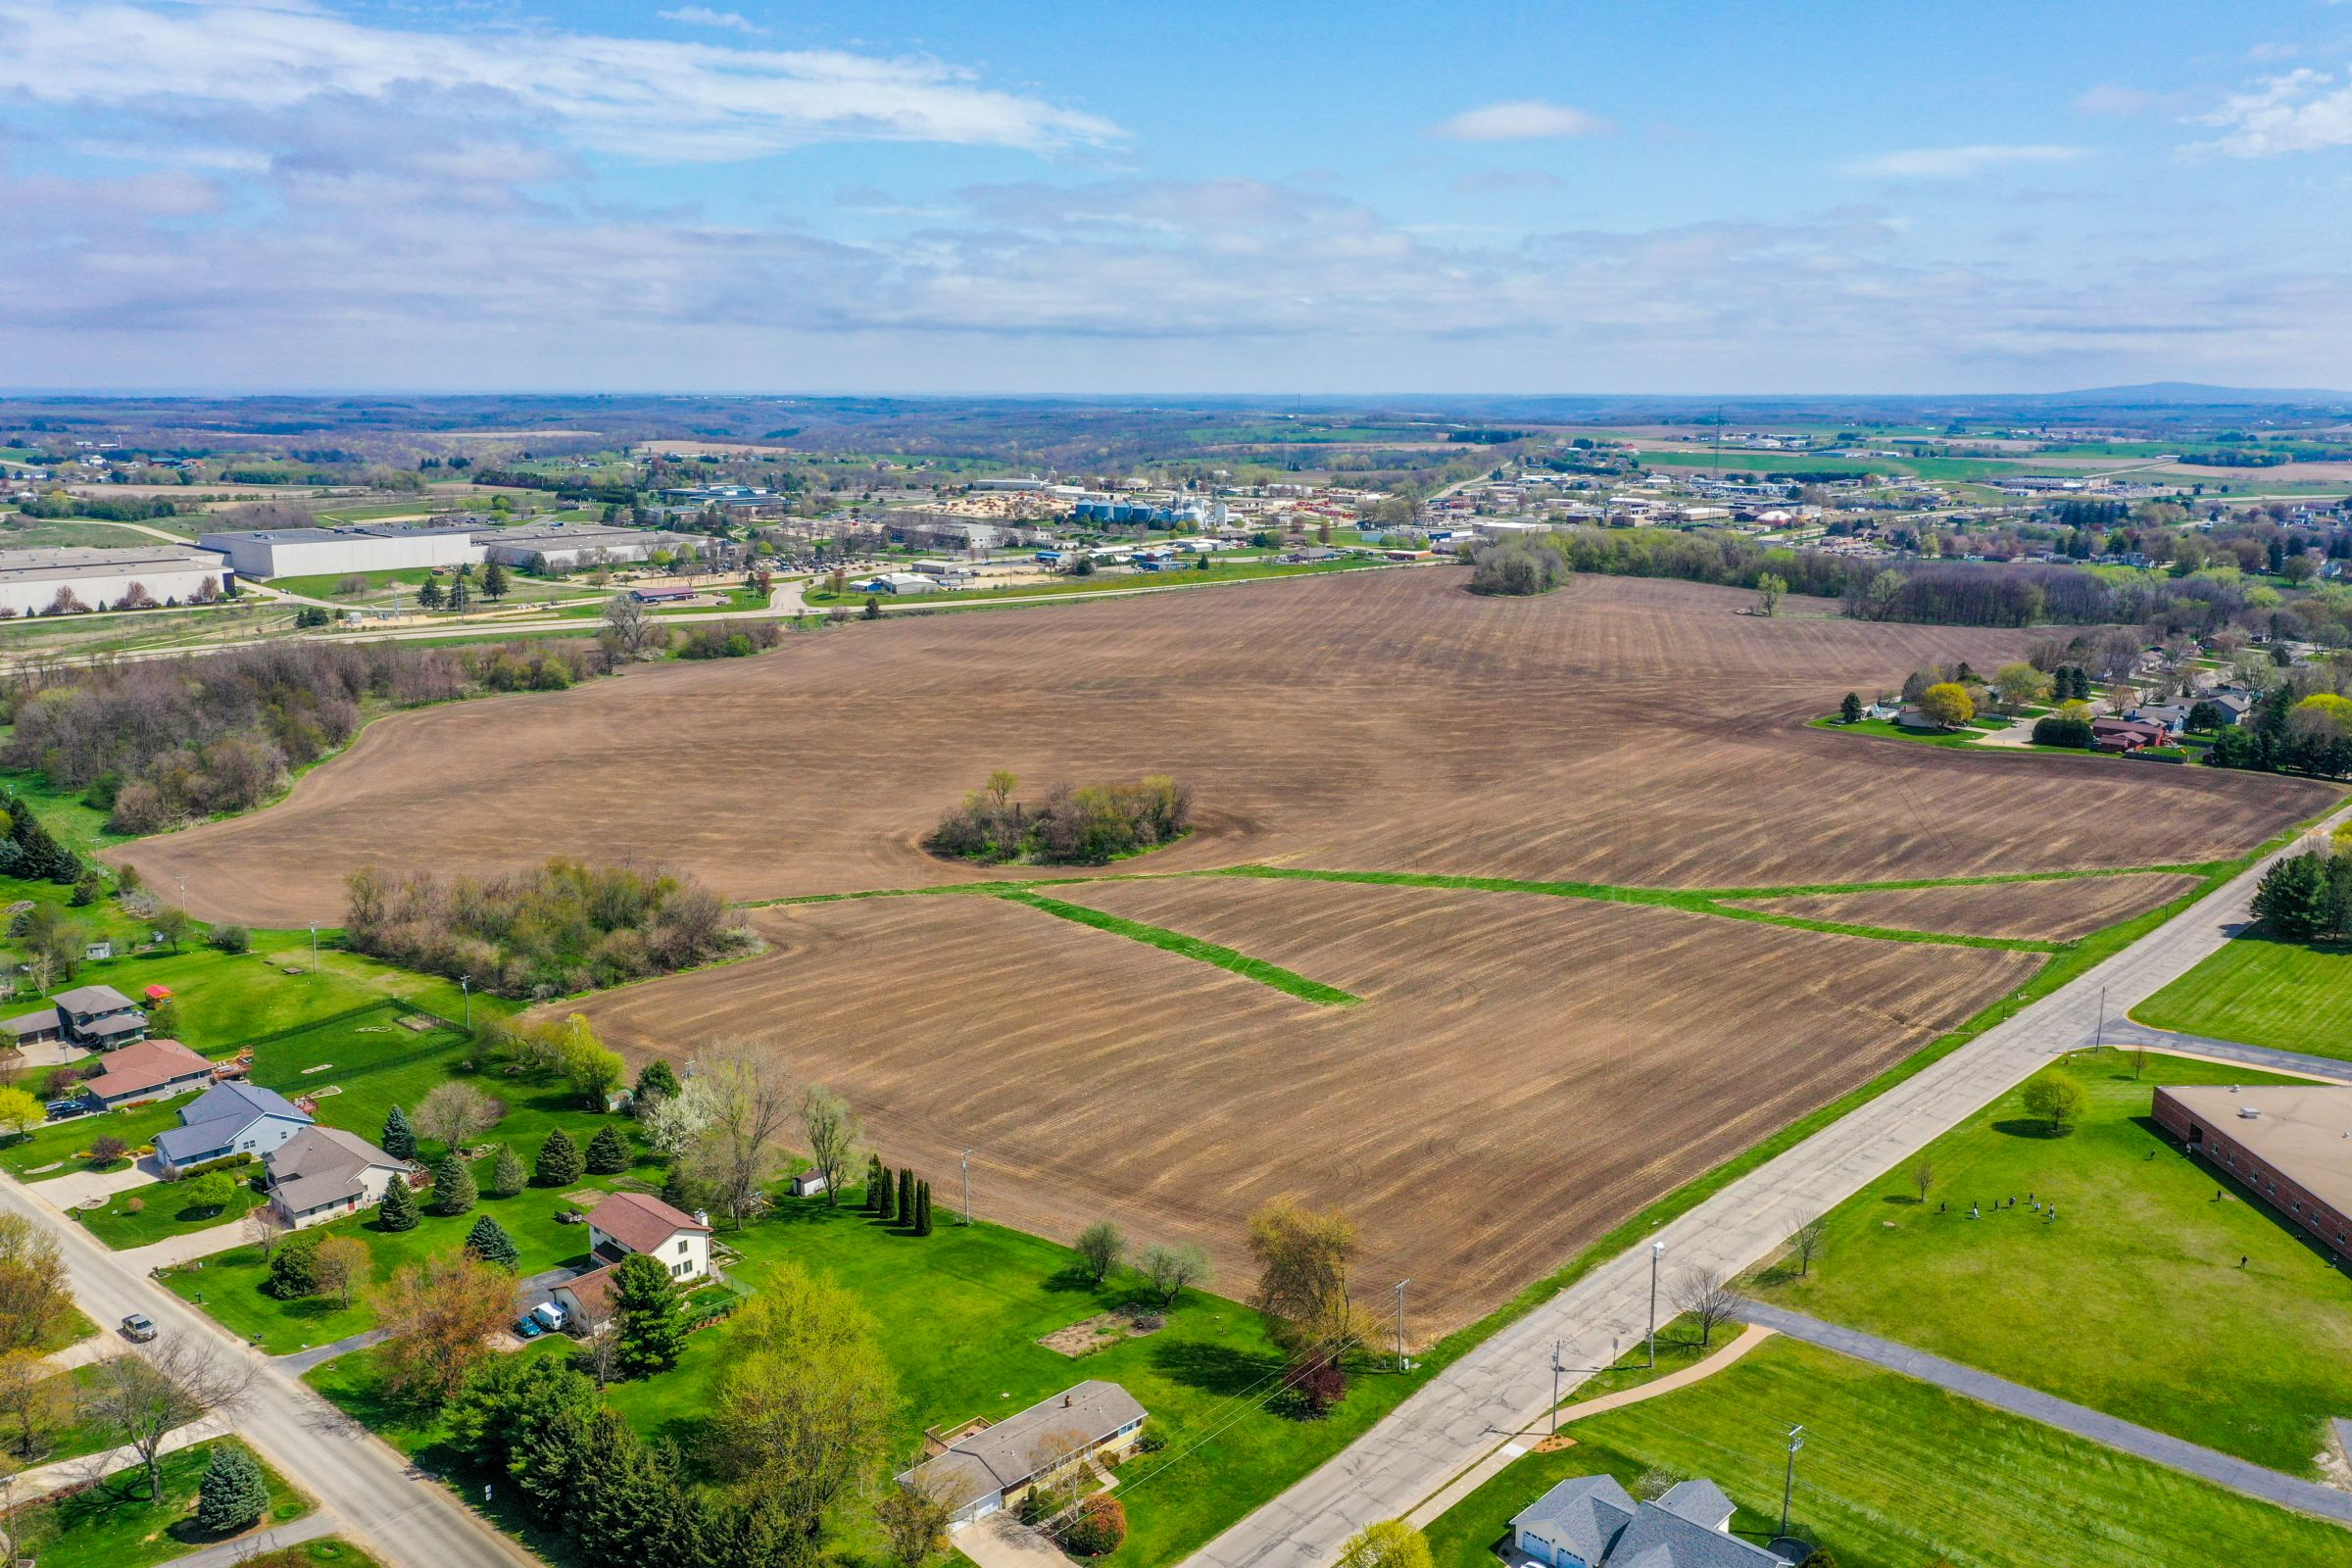 development-land-commercial-iowa-county-wisconsin-152-acres-listing-number-15474-3-2021-05-18-160119.jpg